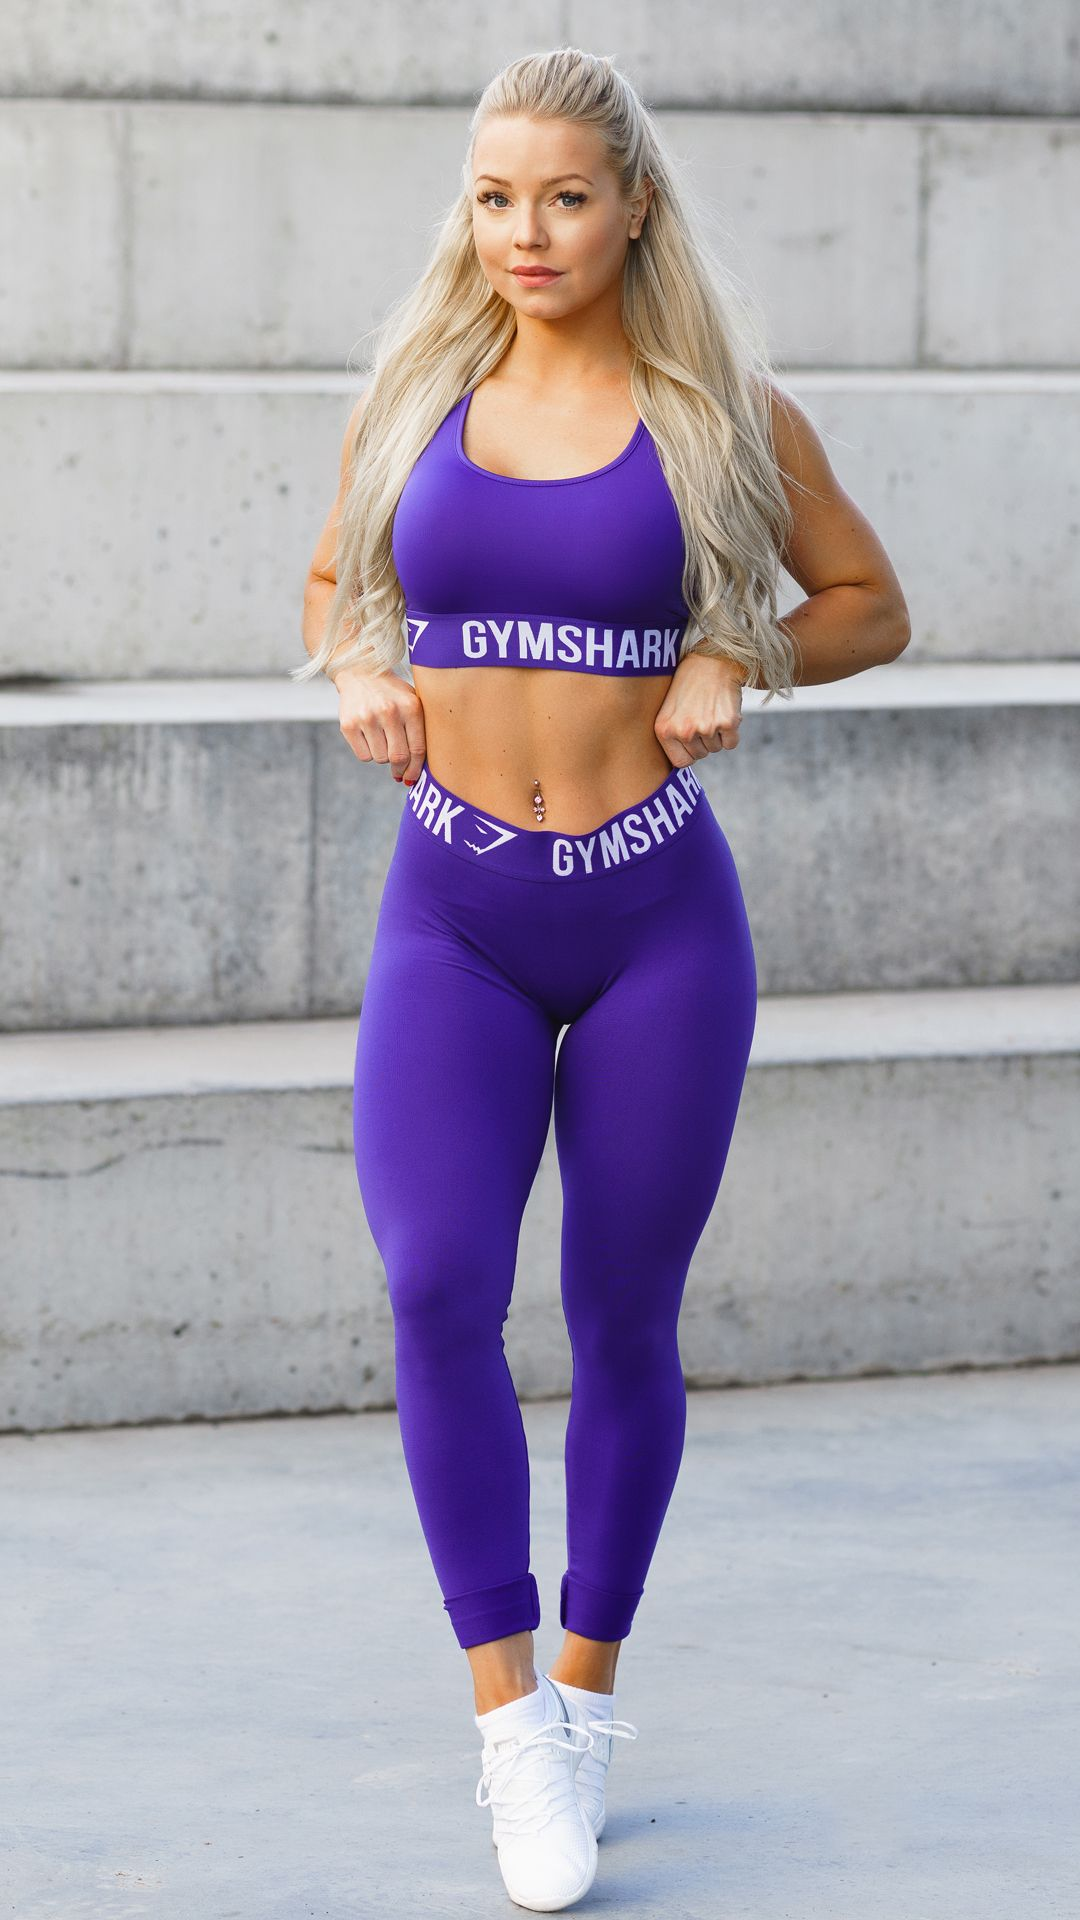 f791188d218f3 Denice Moberg sporting the new Gymshark Fit Leggings and Sports Bra in  Indigo and White.